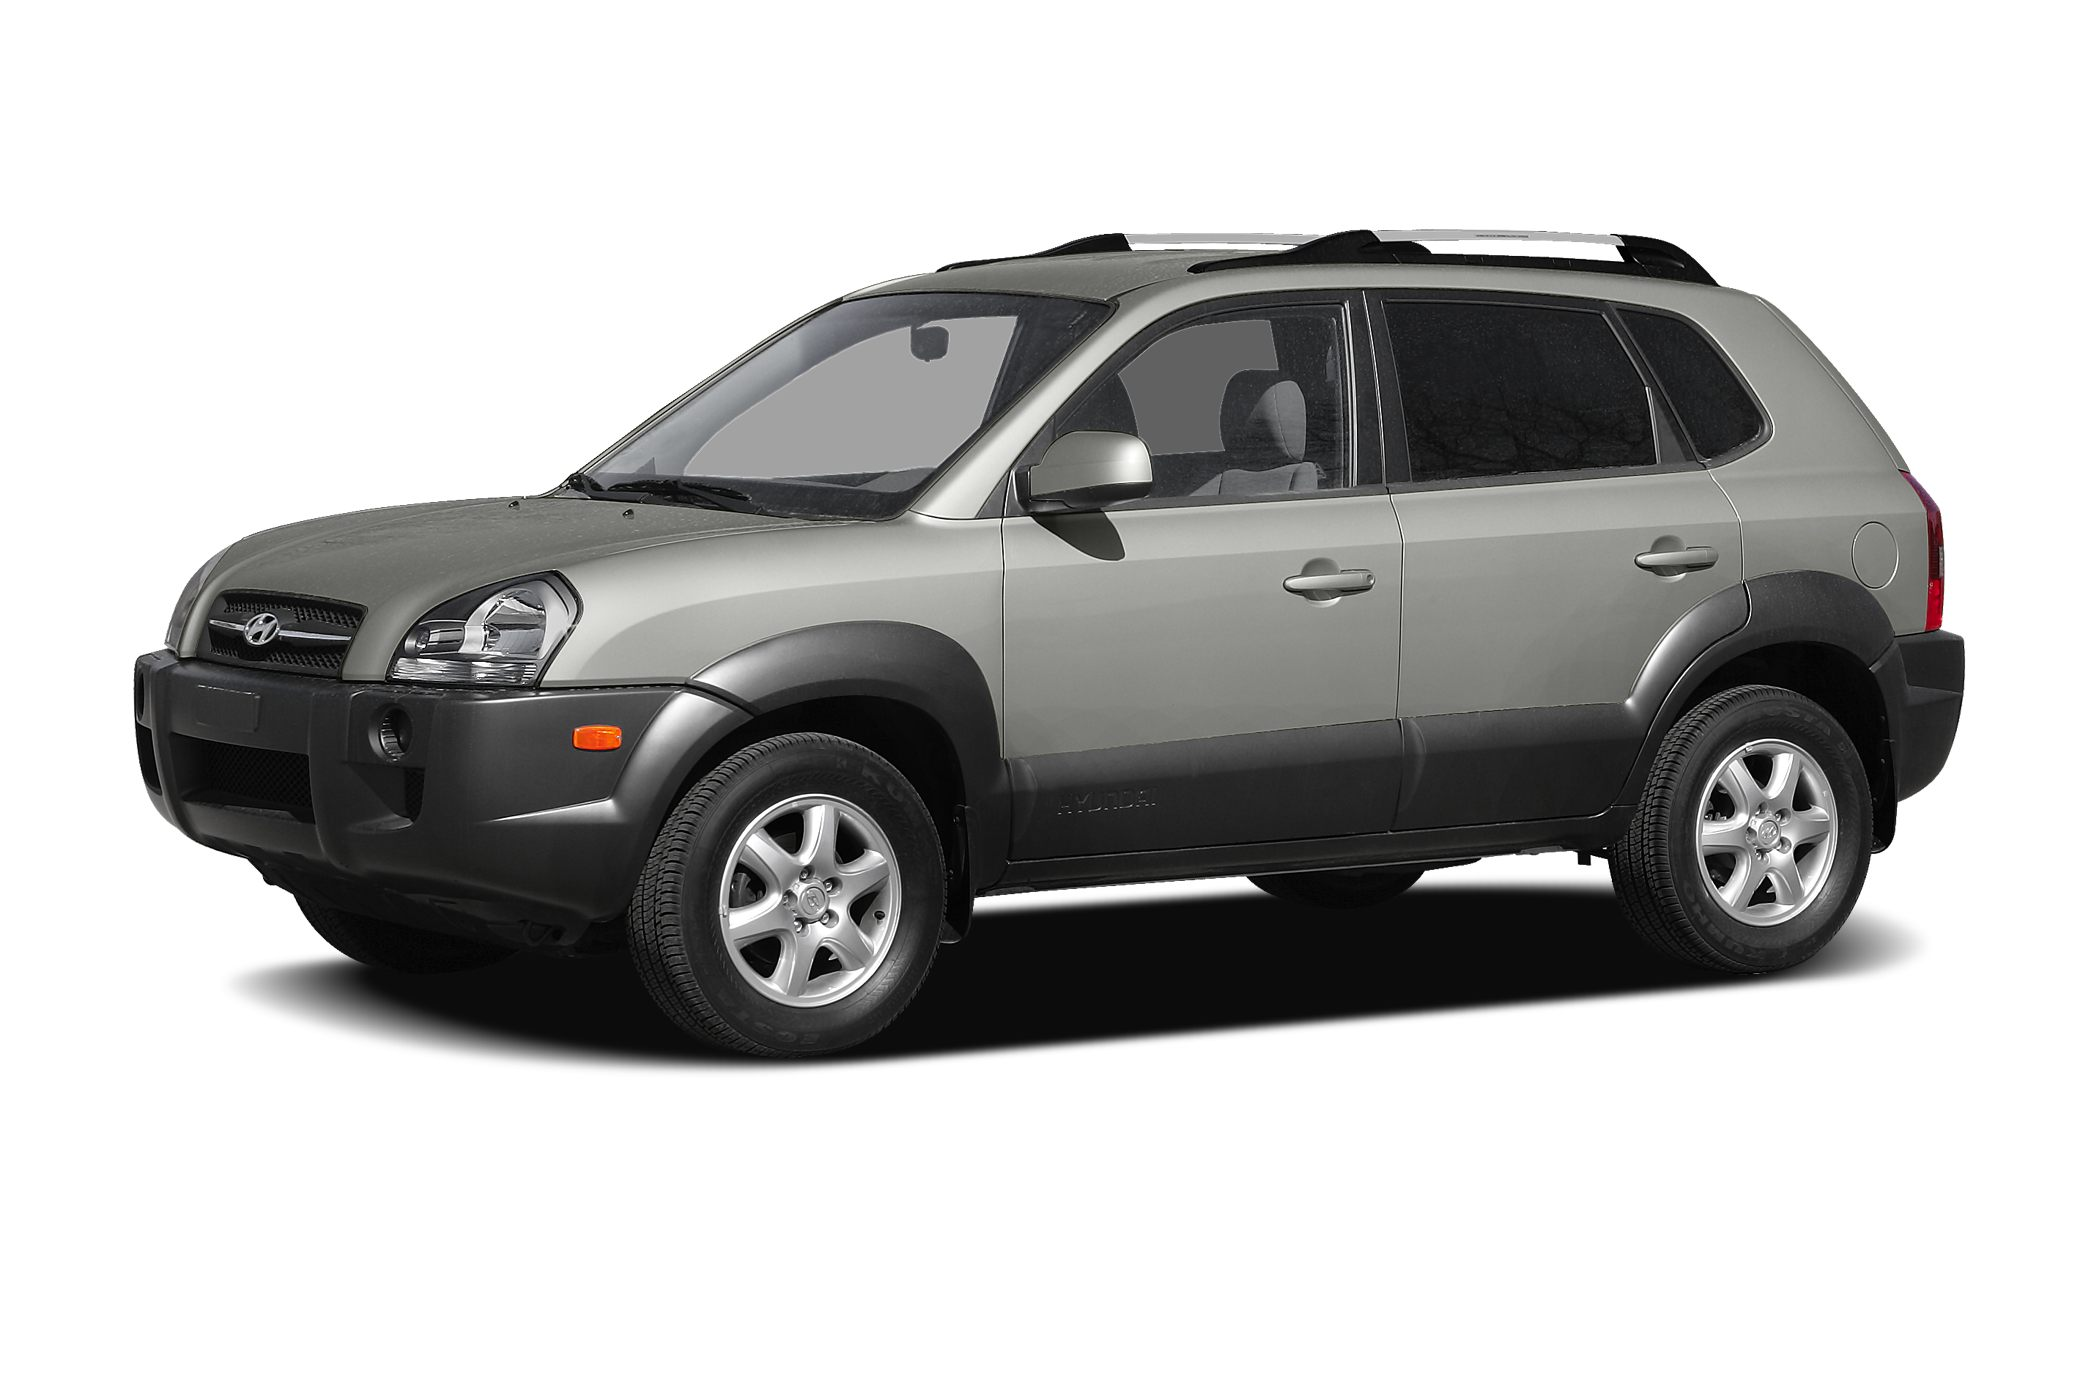 2008 Hyundai Tucson GLS Lifetime Engine Warranty at NO CHARGE on all pre-owned vehicles Courtesy A